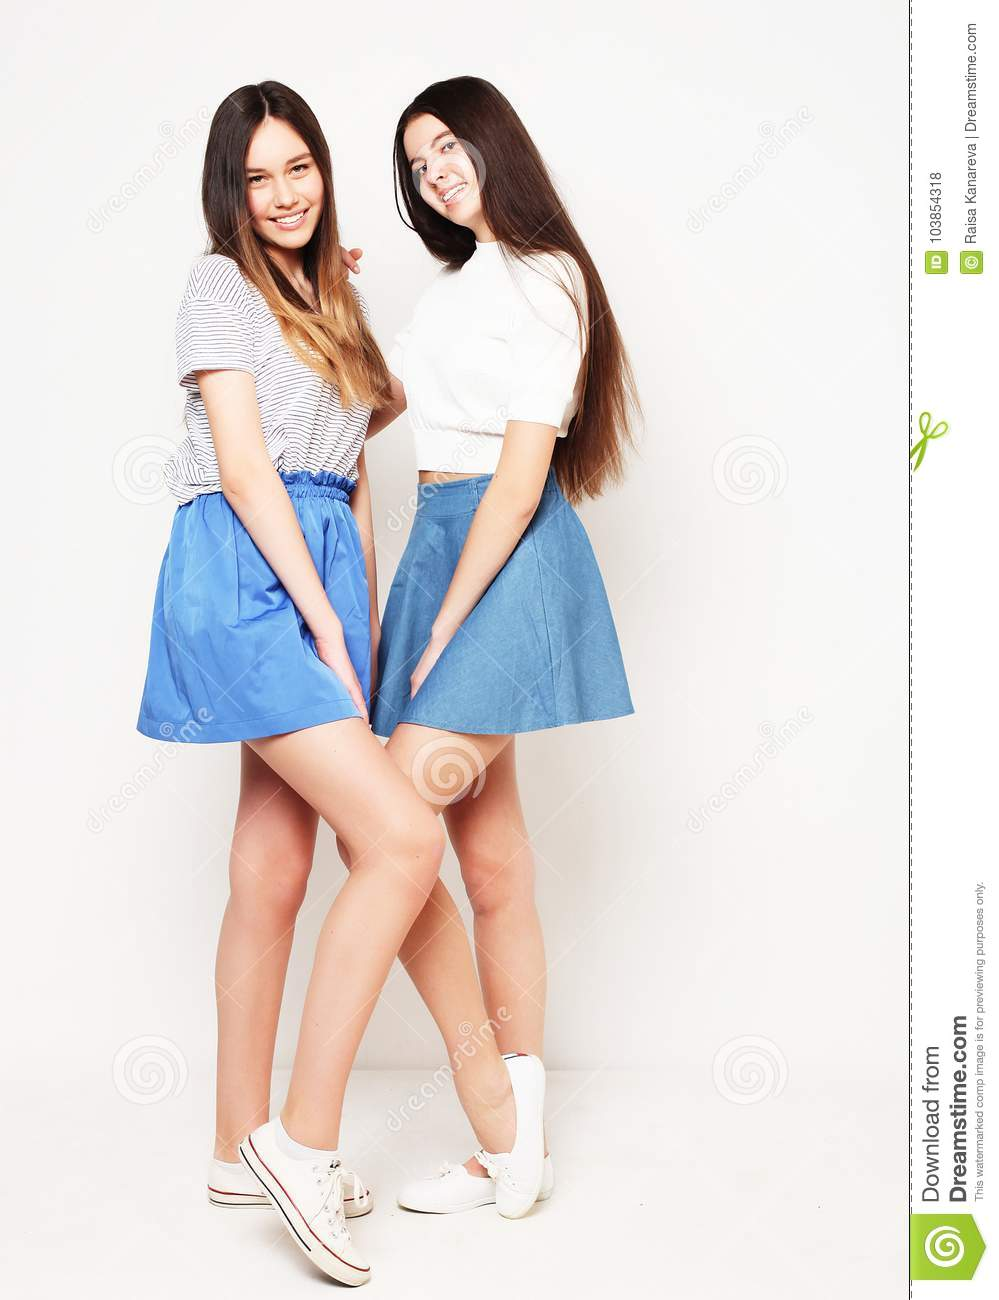 Full body portrait of two happy girls over white background